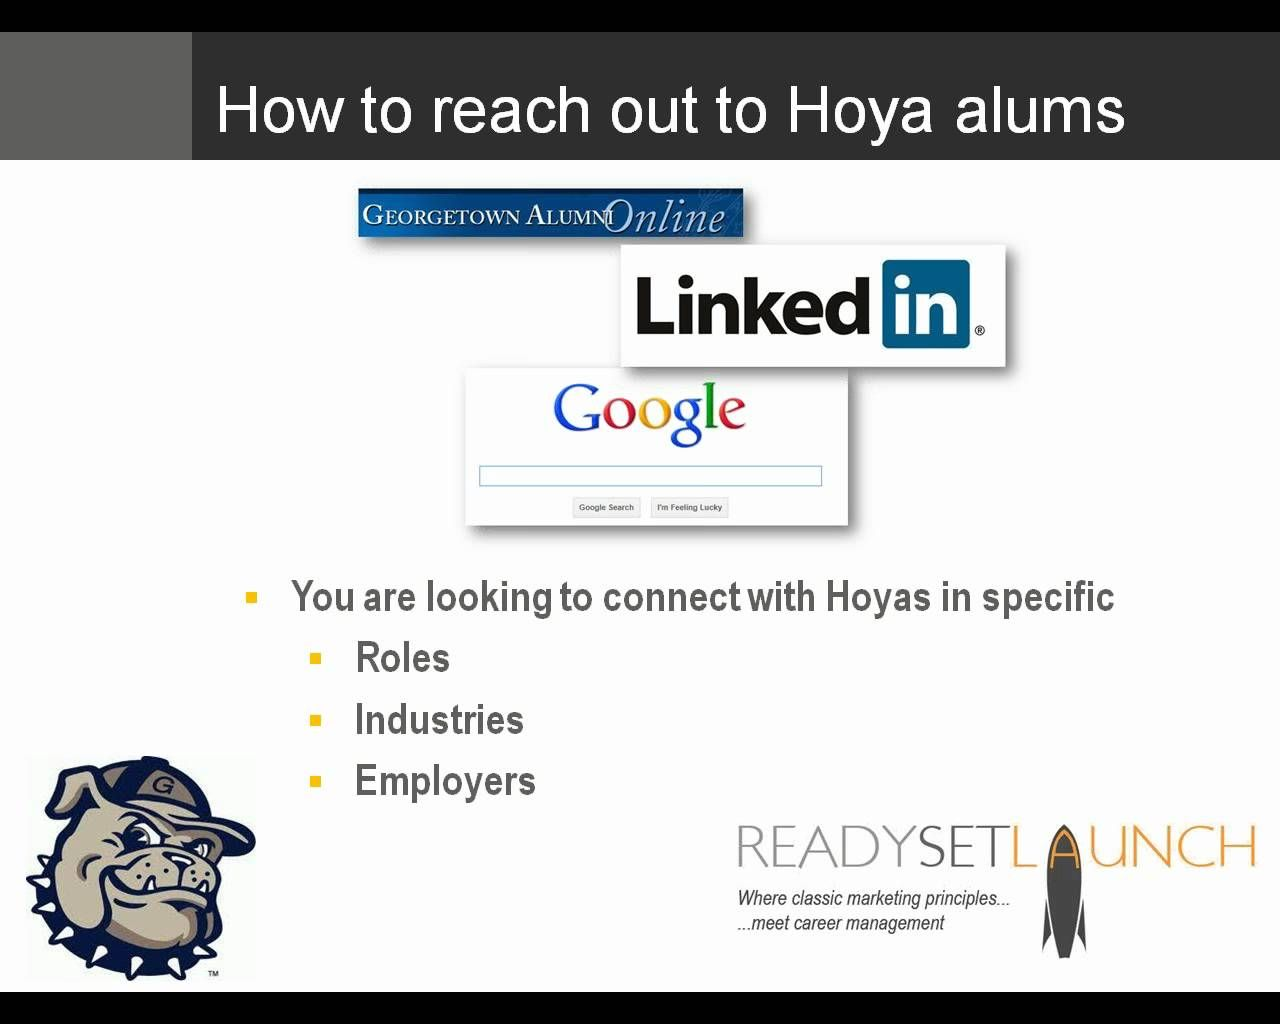 So Call Me Maybe? Strategies for Connecting to Hoya Alumni, via YouTube.